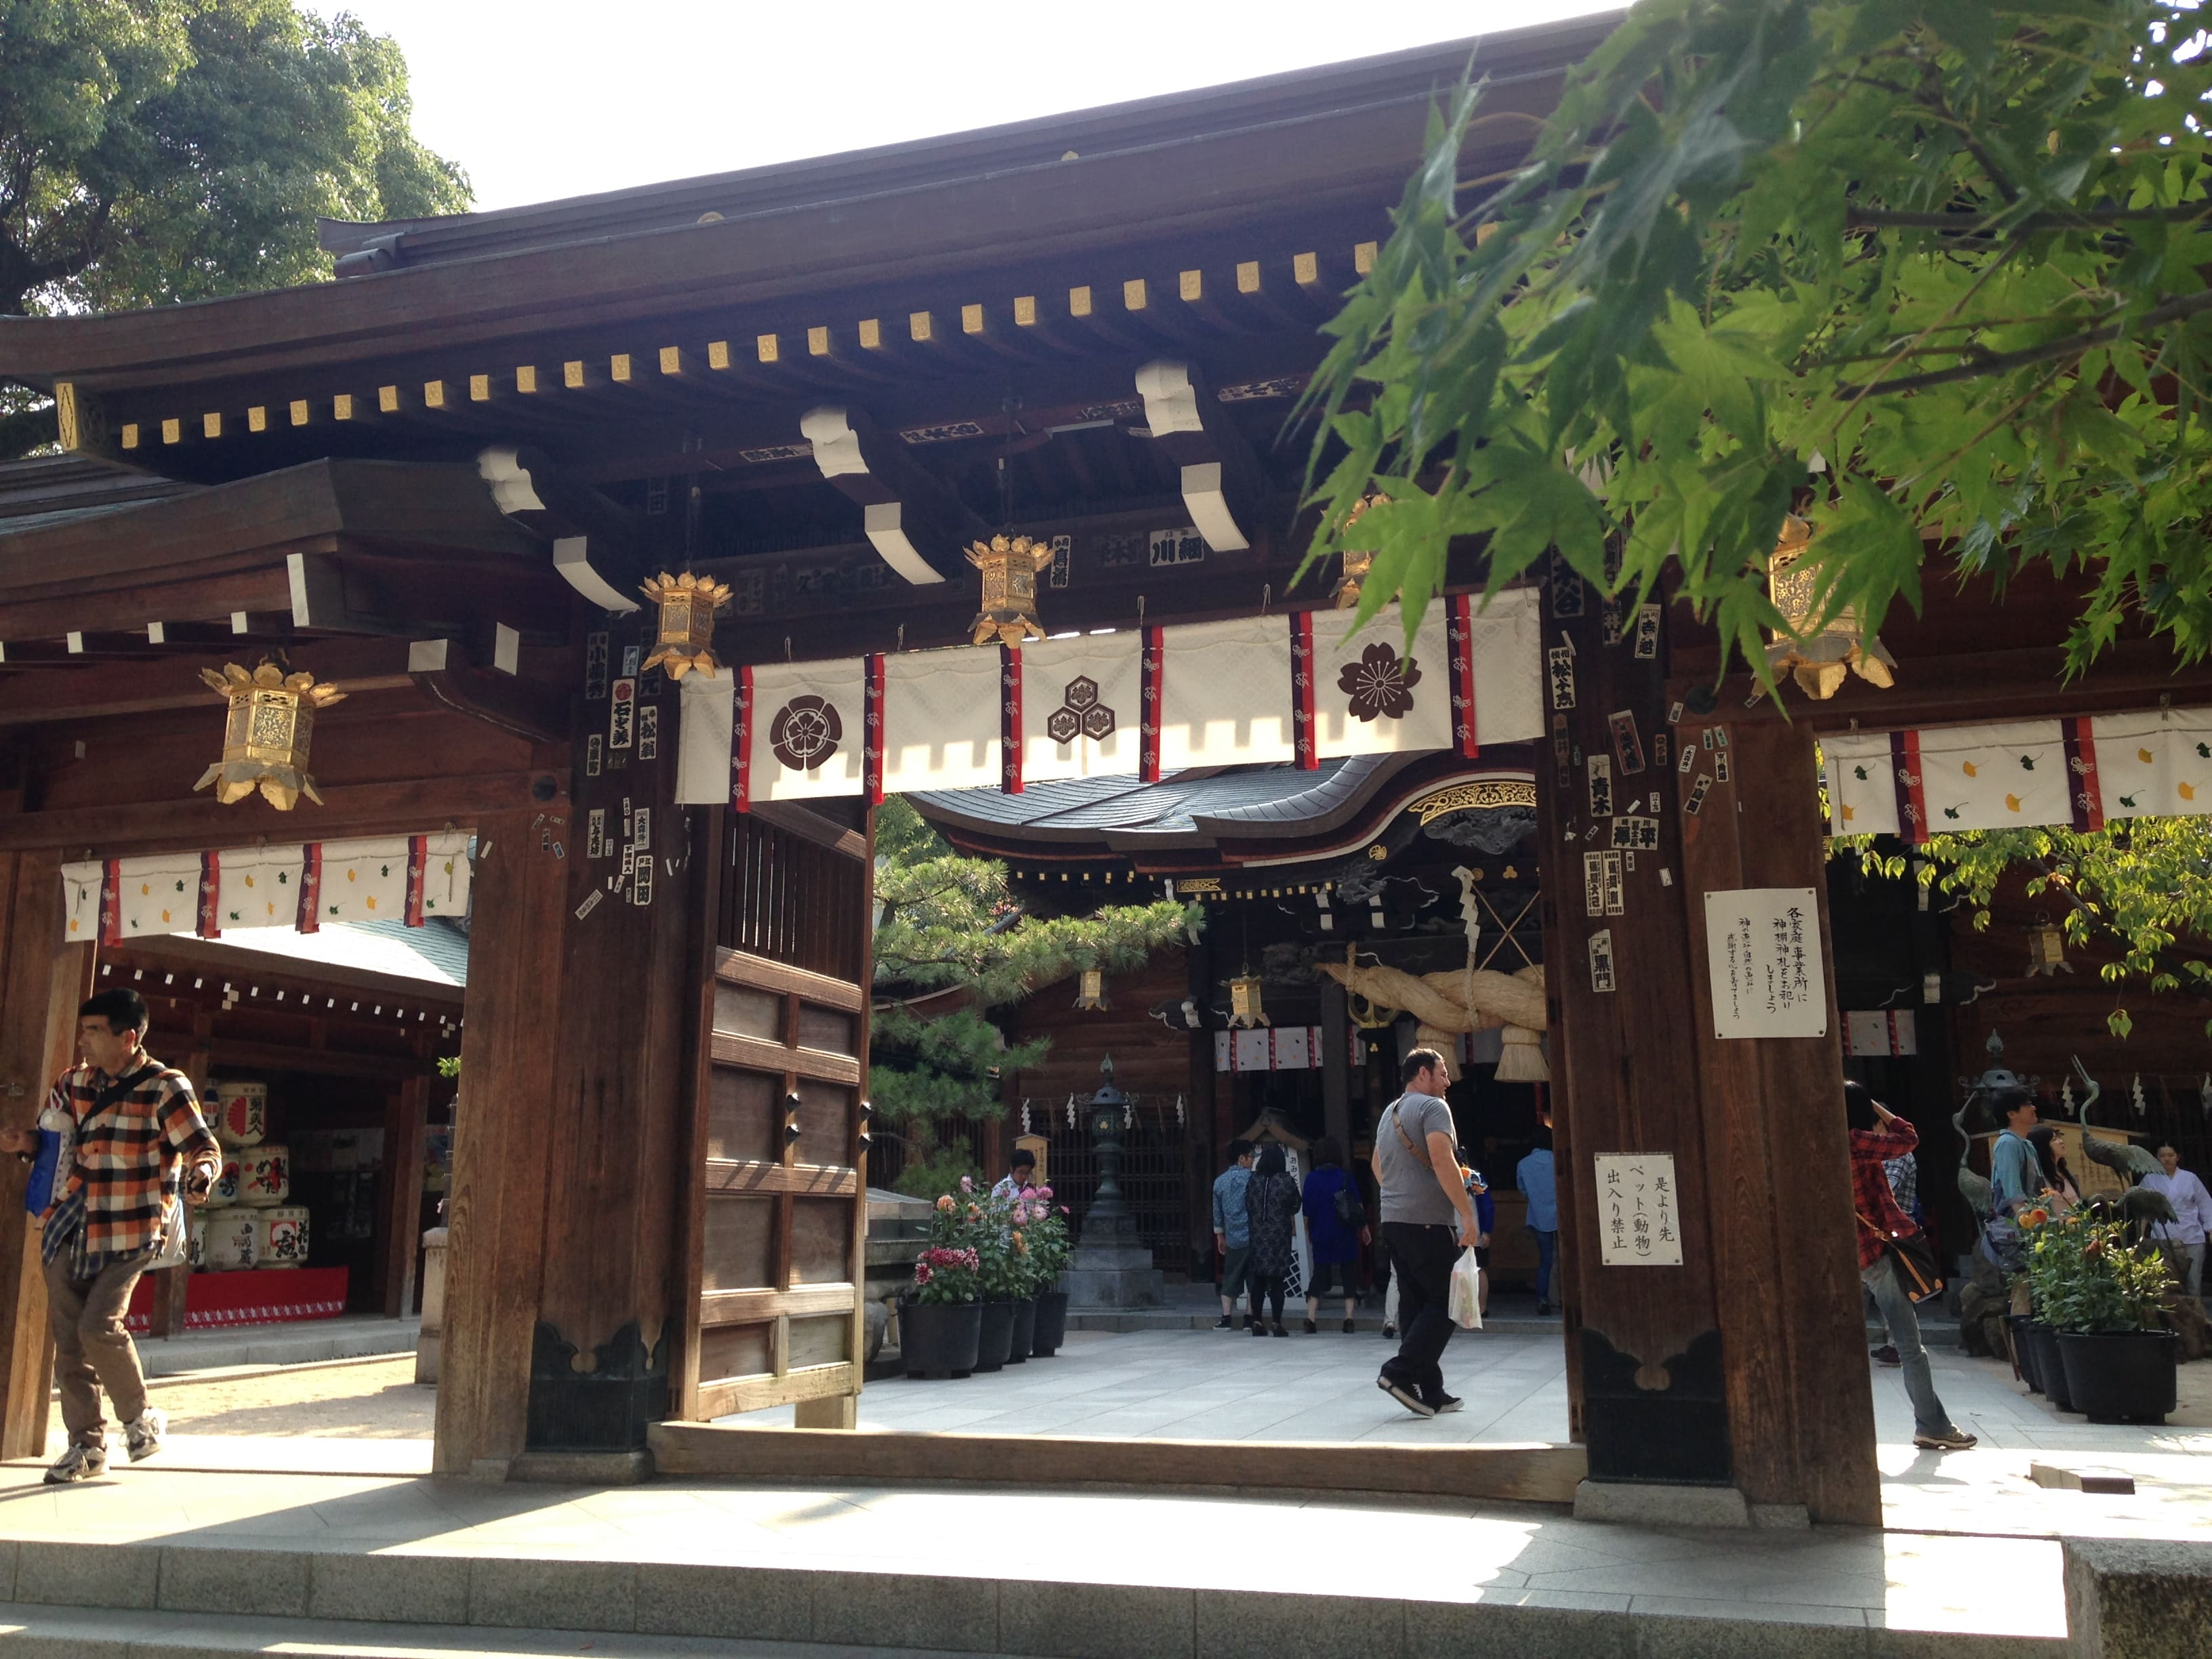 Visiting the Kushida Shrine is one of the Things to do in Fukuoka Japan